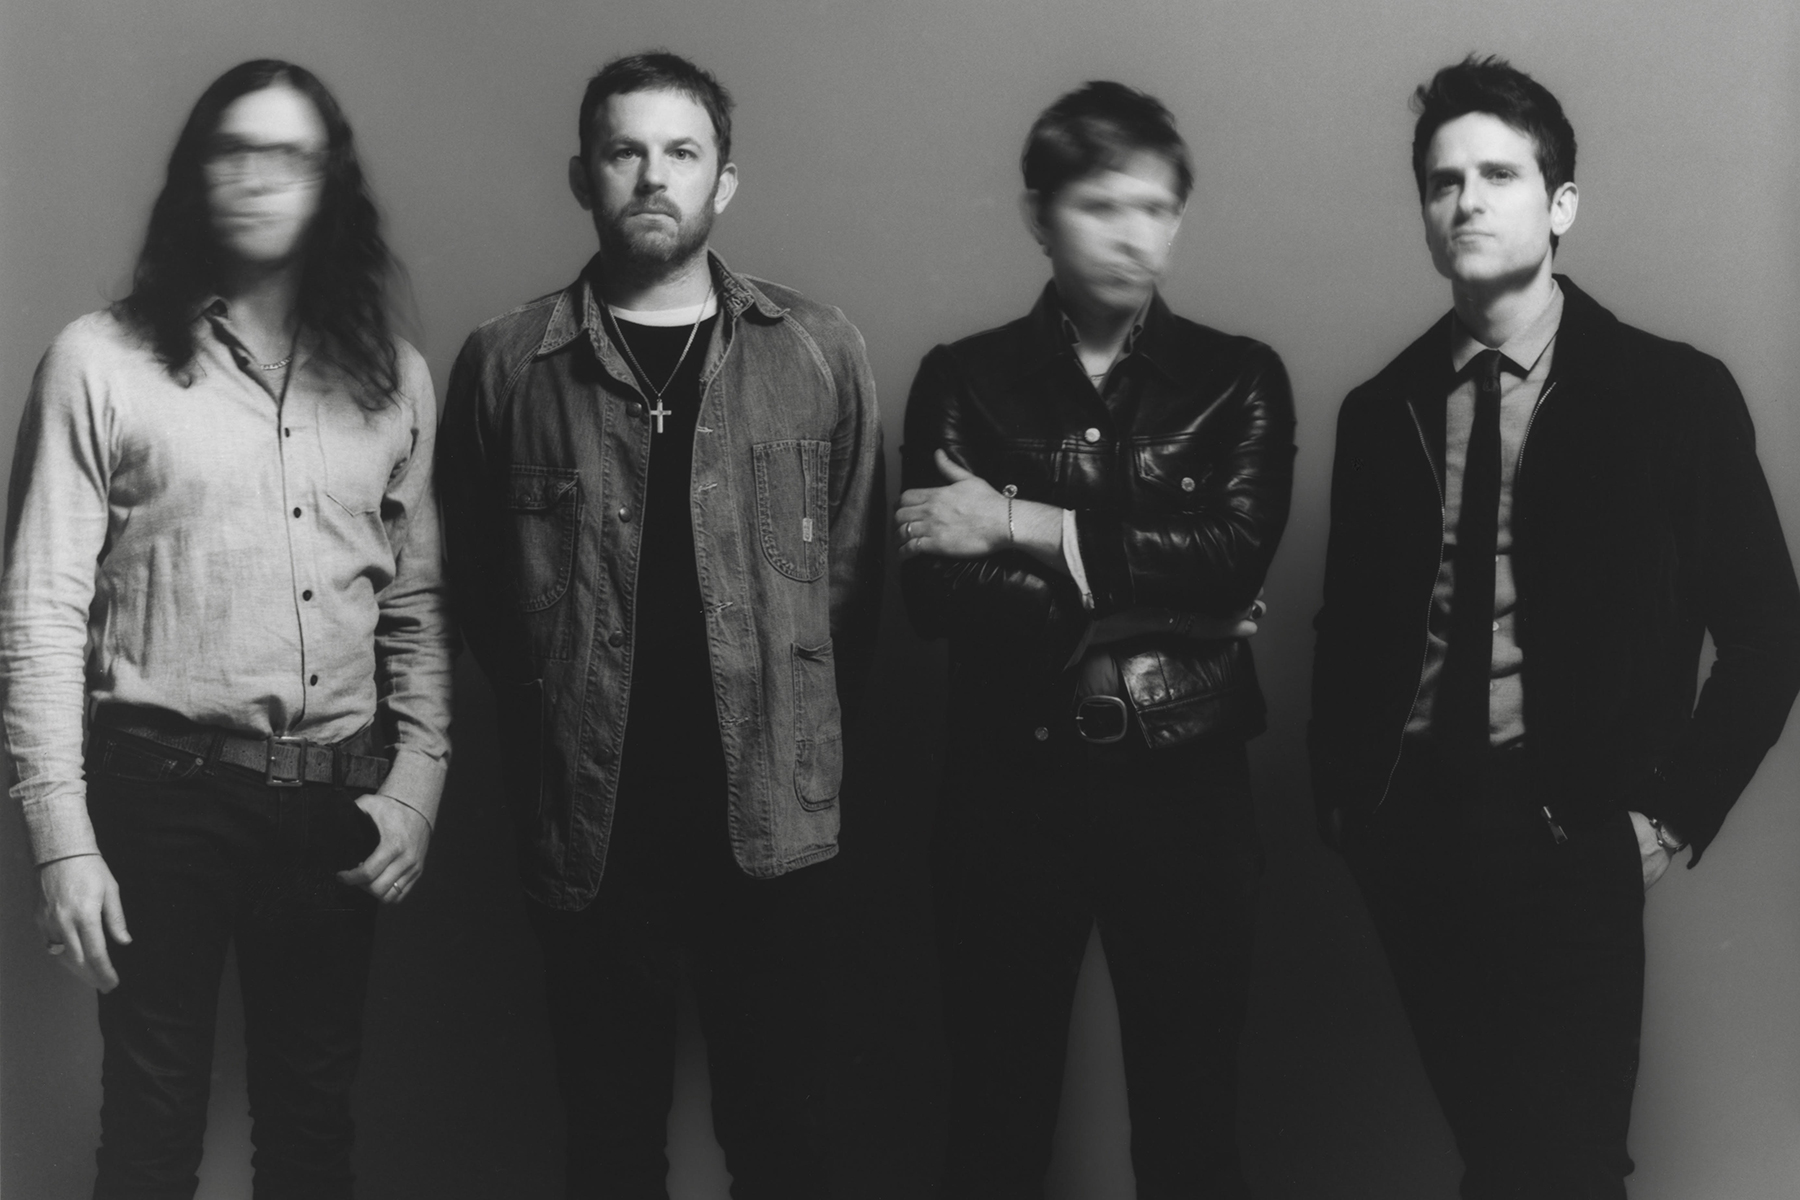 Kings of Leon Preview New Album With 'The Bandit' and '100,000 People' -  Rolling Stone